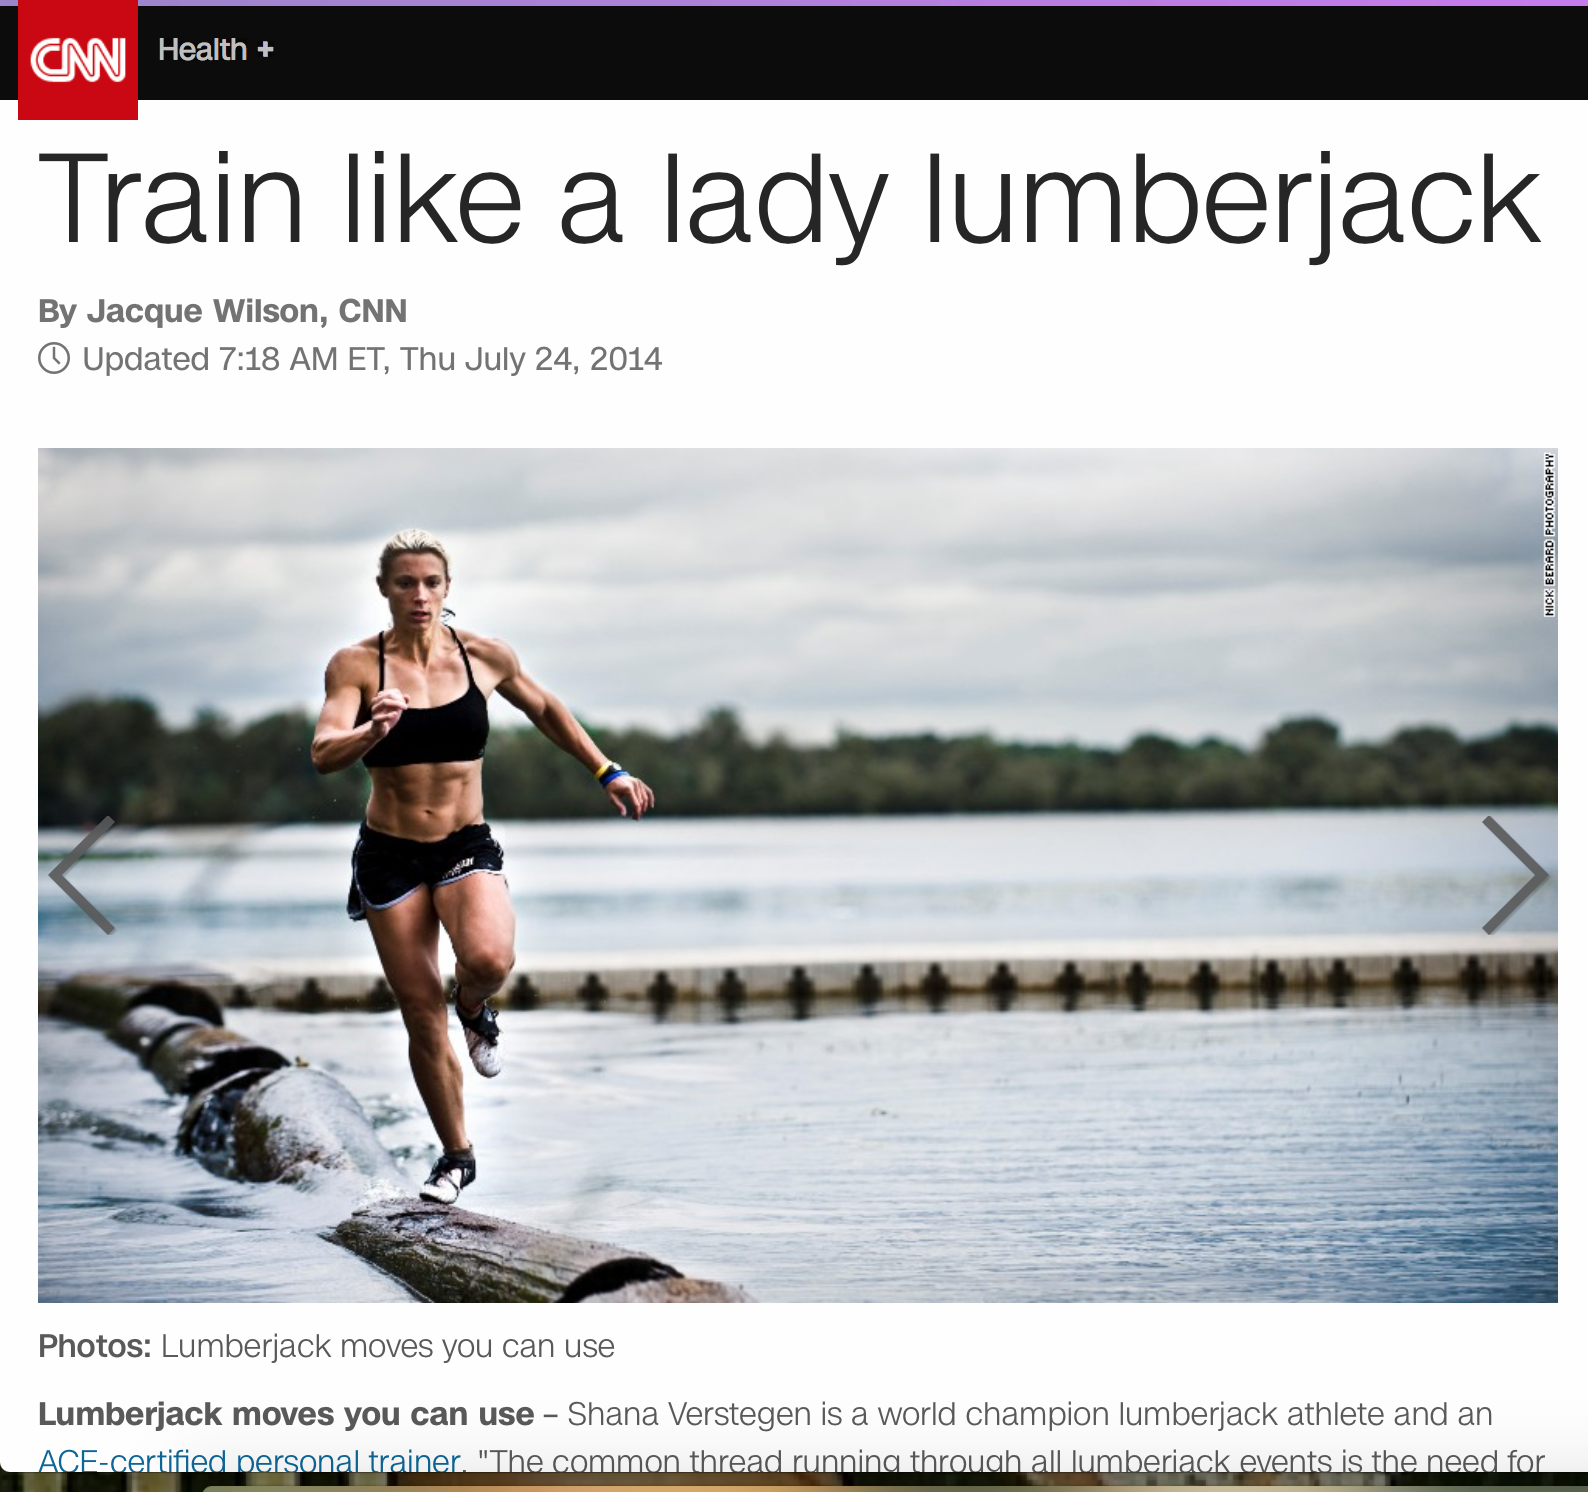 Train Like a Lady Lumberjack: CNN 2014